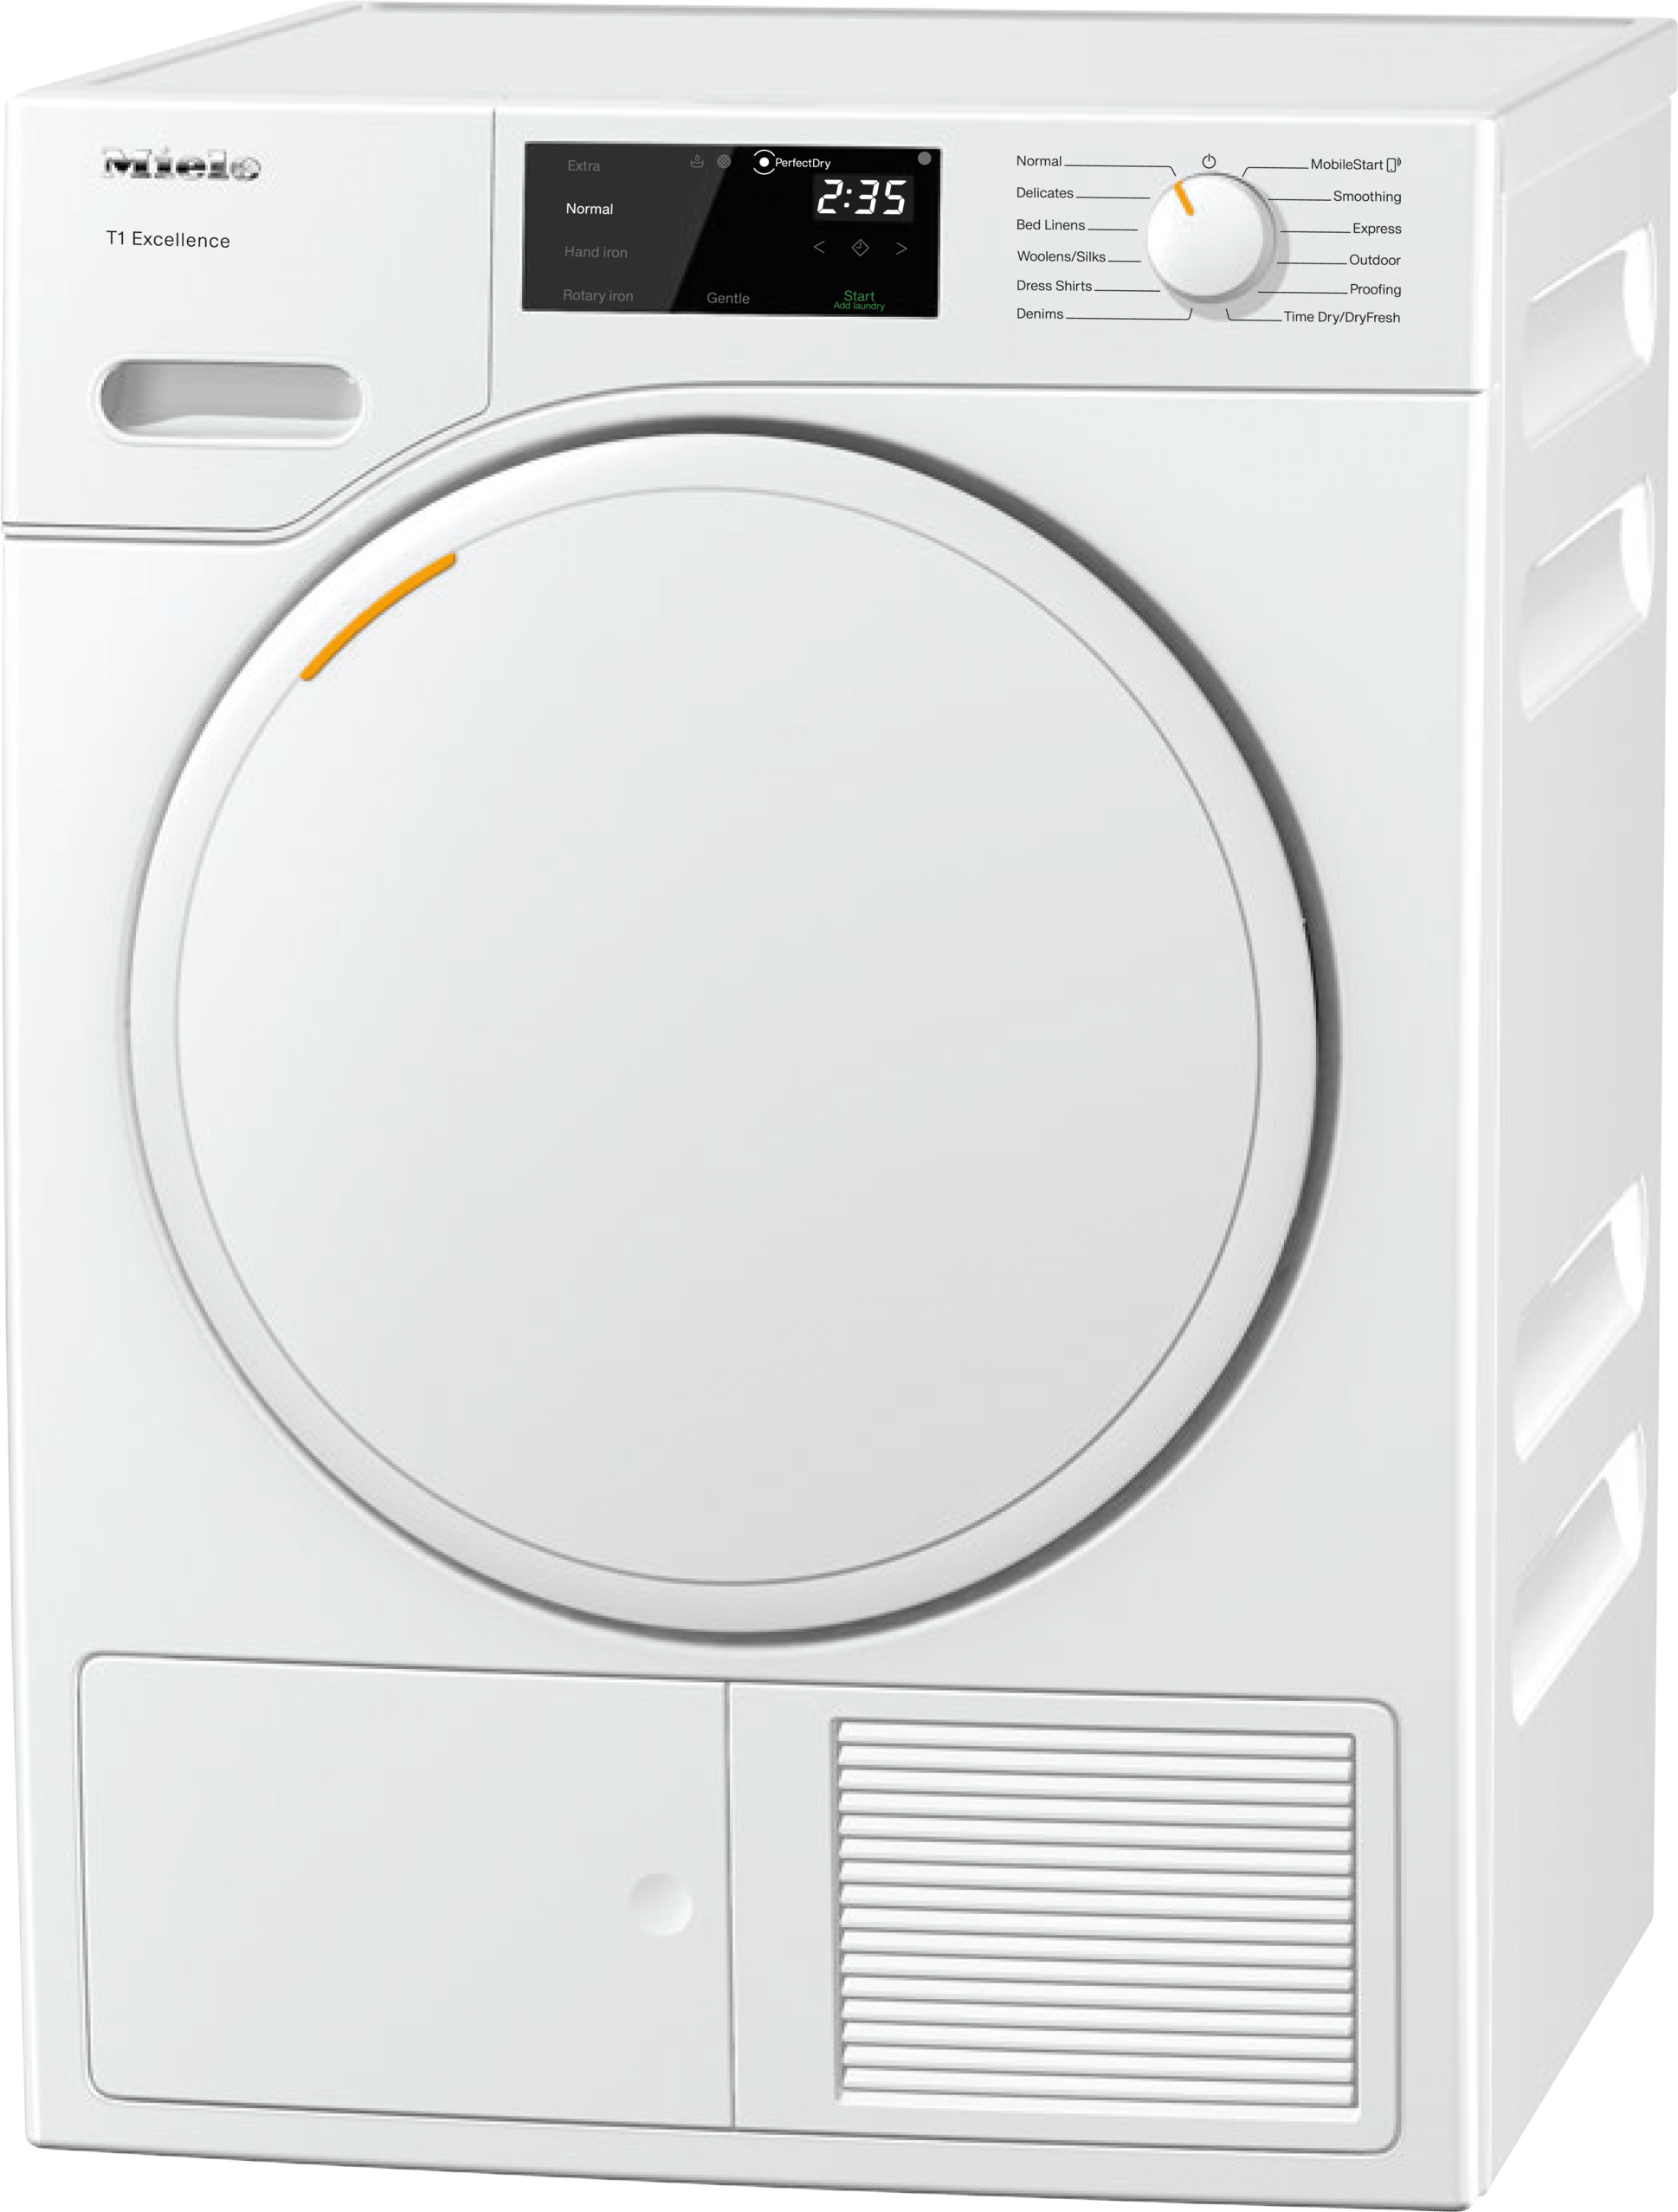 MieleTxd160wp - T1 Heat-Pump Tumble Dryer With Miele@home And Fragrancedos For Laundry That Smells Great.